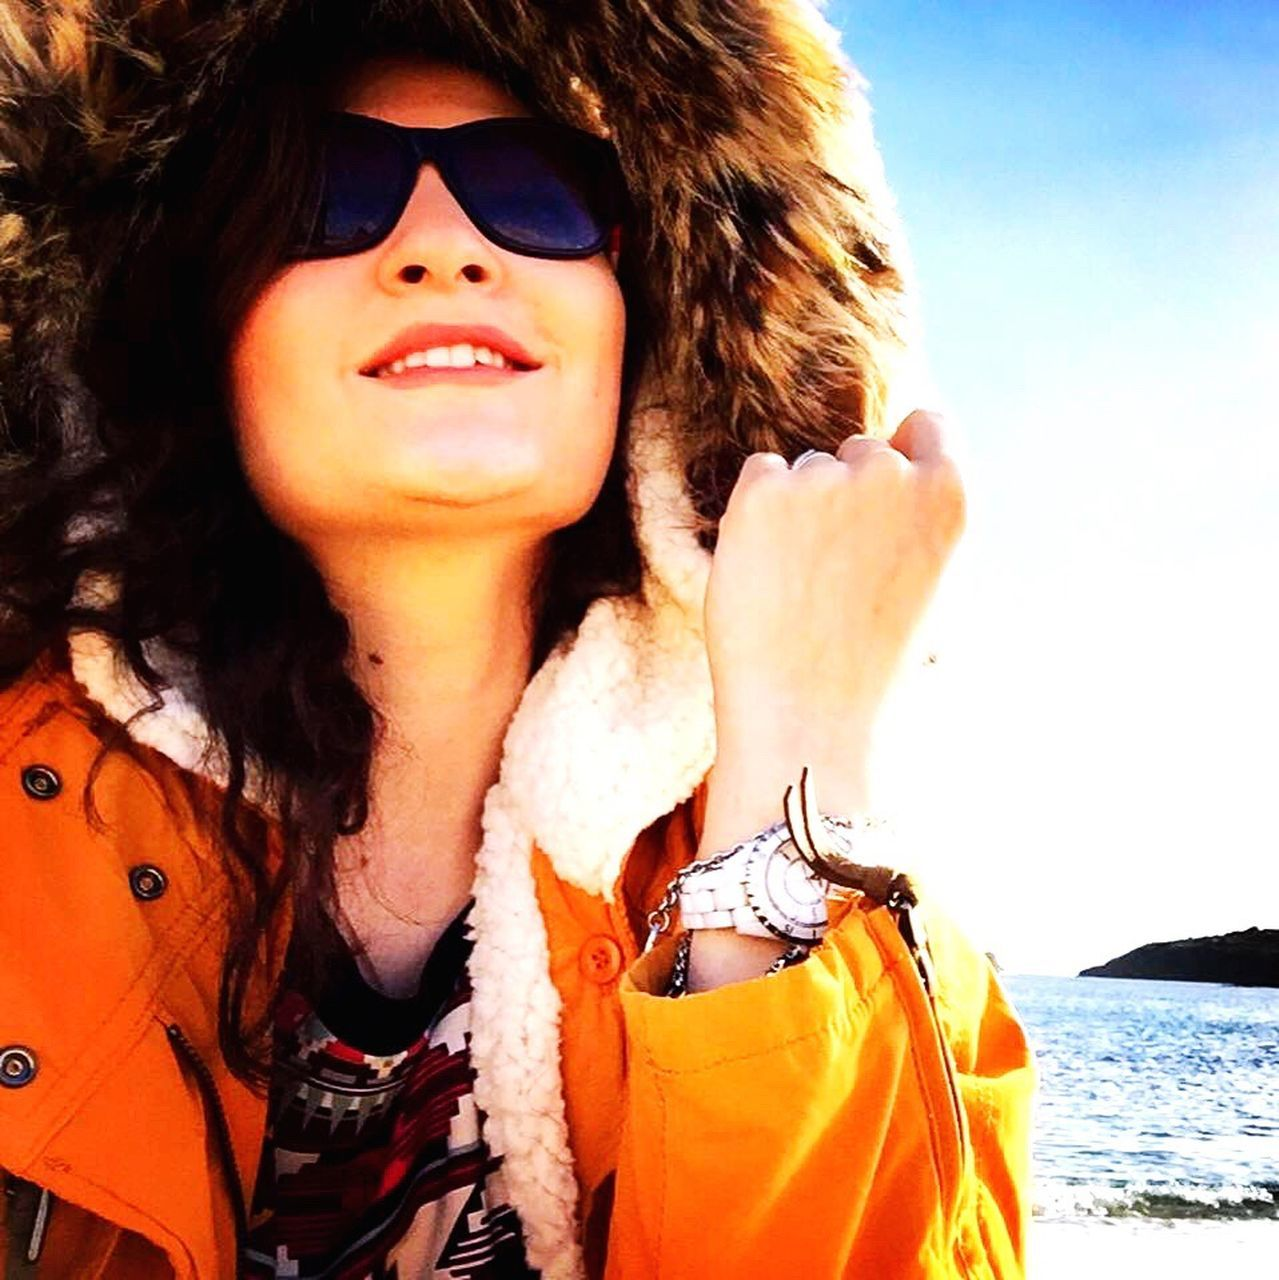 one person, sunglasses, young adult, portrait, smiling, beautiful woman, leisure activity, outdoors, young women, looking at camera, front view, real people, lifestyles, day, vacations, sunlight, one woman only, only women, confidence, sea, one young woman only, happiness, adults only, beach, beauty, adult, women, cheerful, sky, nature, people, water, close-up, beauty in nature